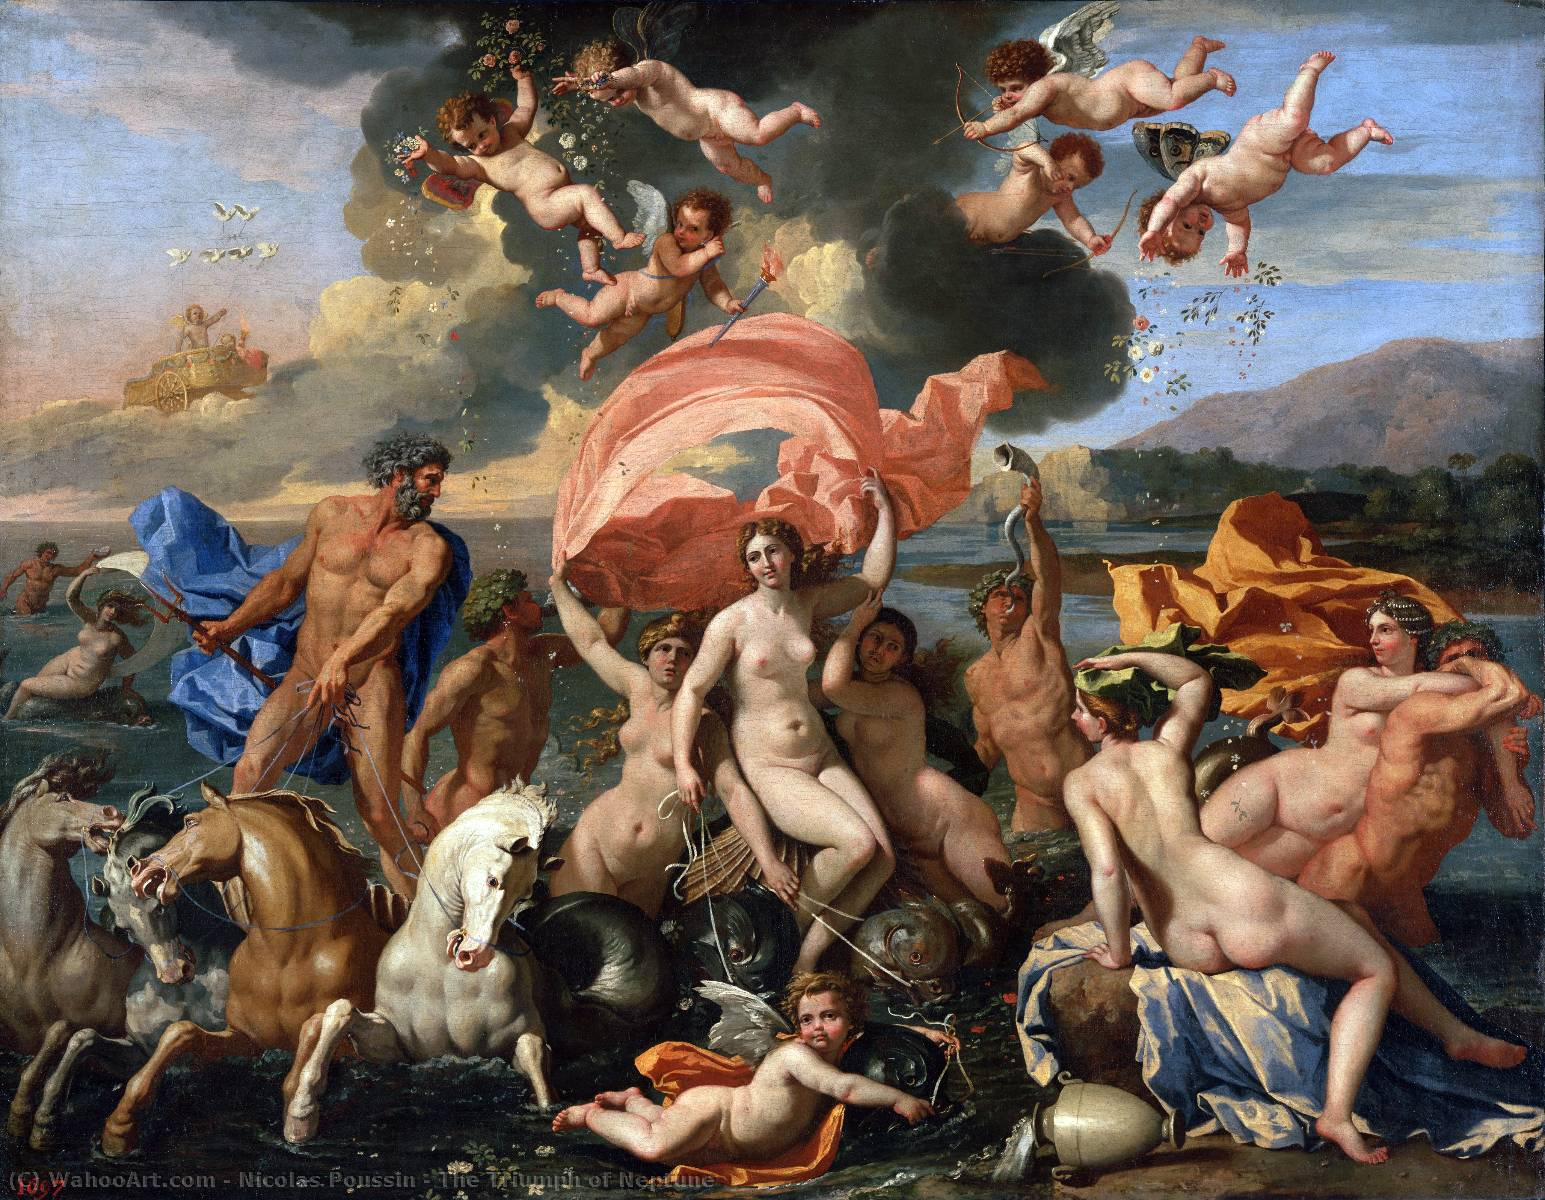 The Triumph of Neptune, Oil On Canvas by Nicolas Poussin (1594-1665, France)